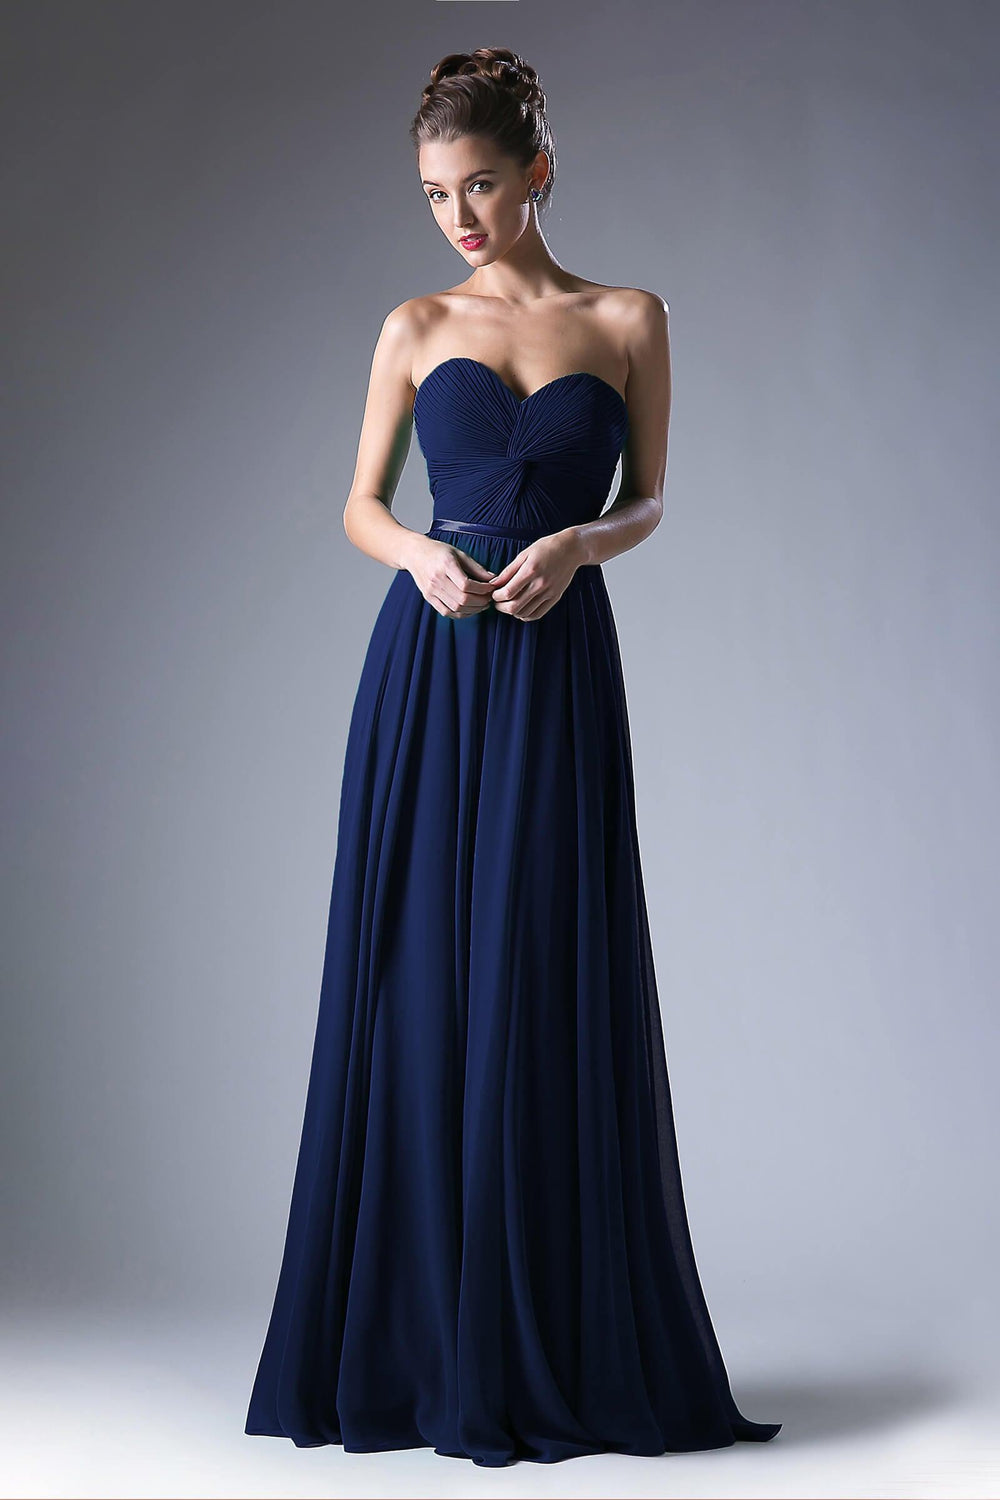 Strapless Chiffon Empire Waist Prom Dress - The Dress Outlet Navy